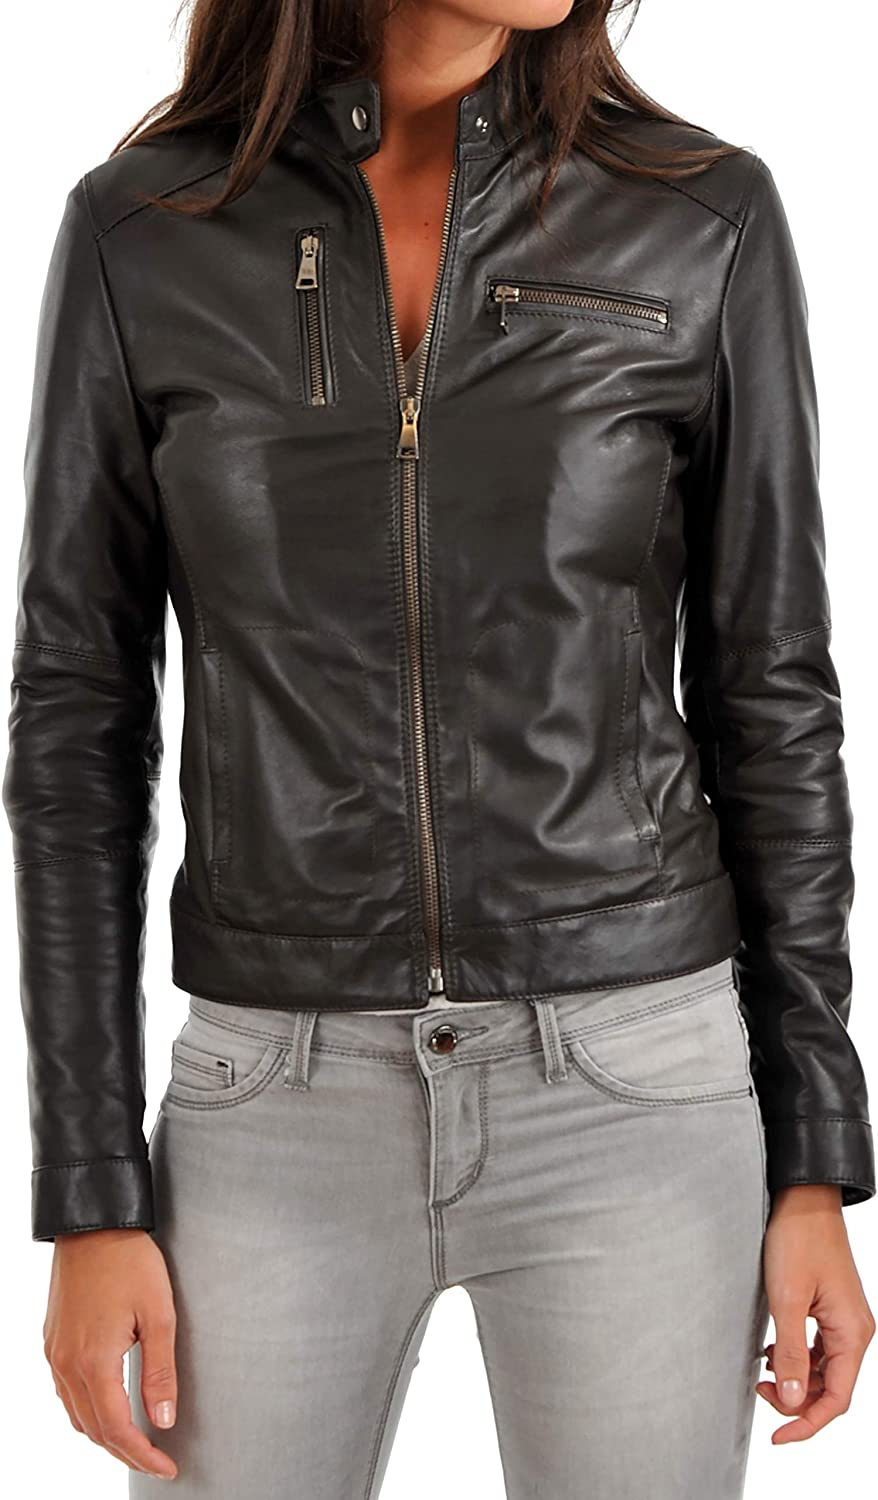 KAINAT Women's Max 40% OFF Motorcycle Bomber Biker Lambskin H Jacket Leather Super popular specialty store